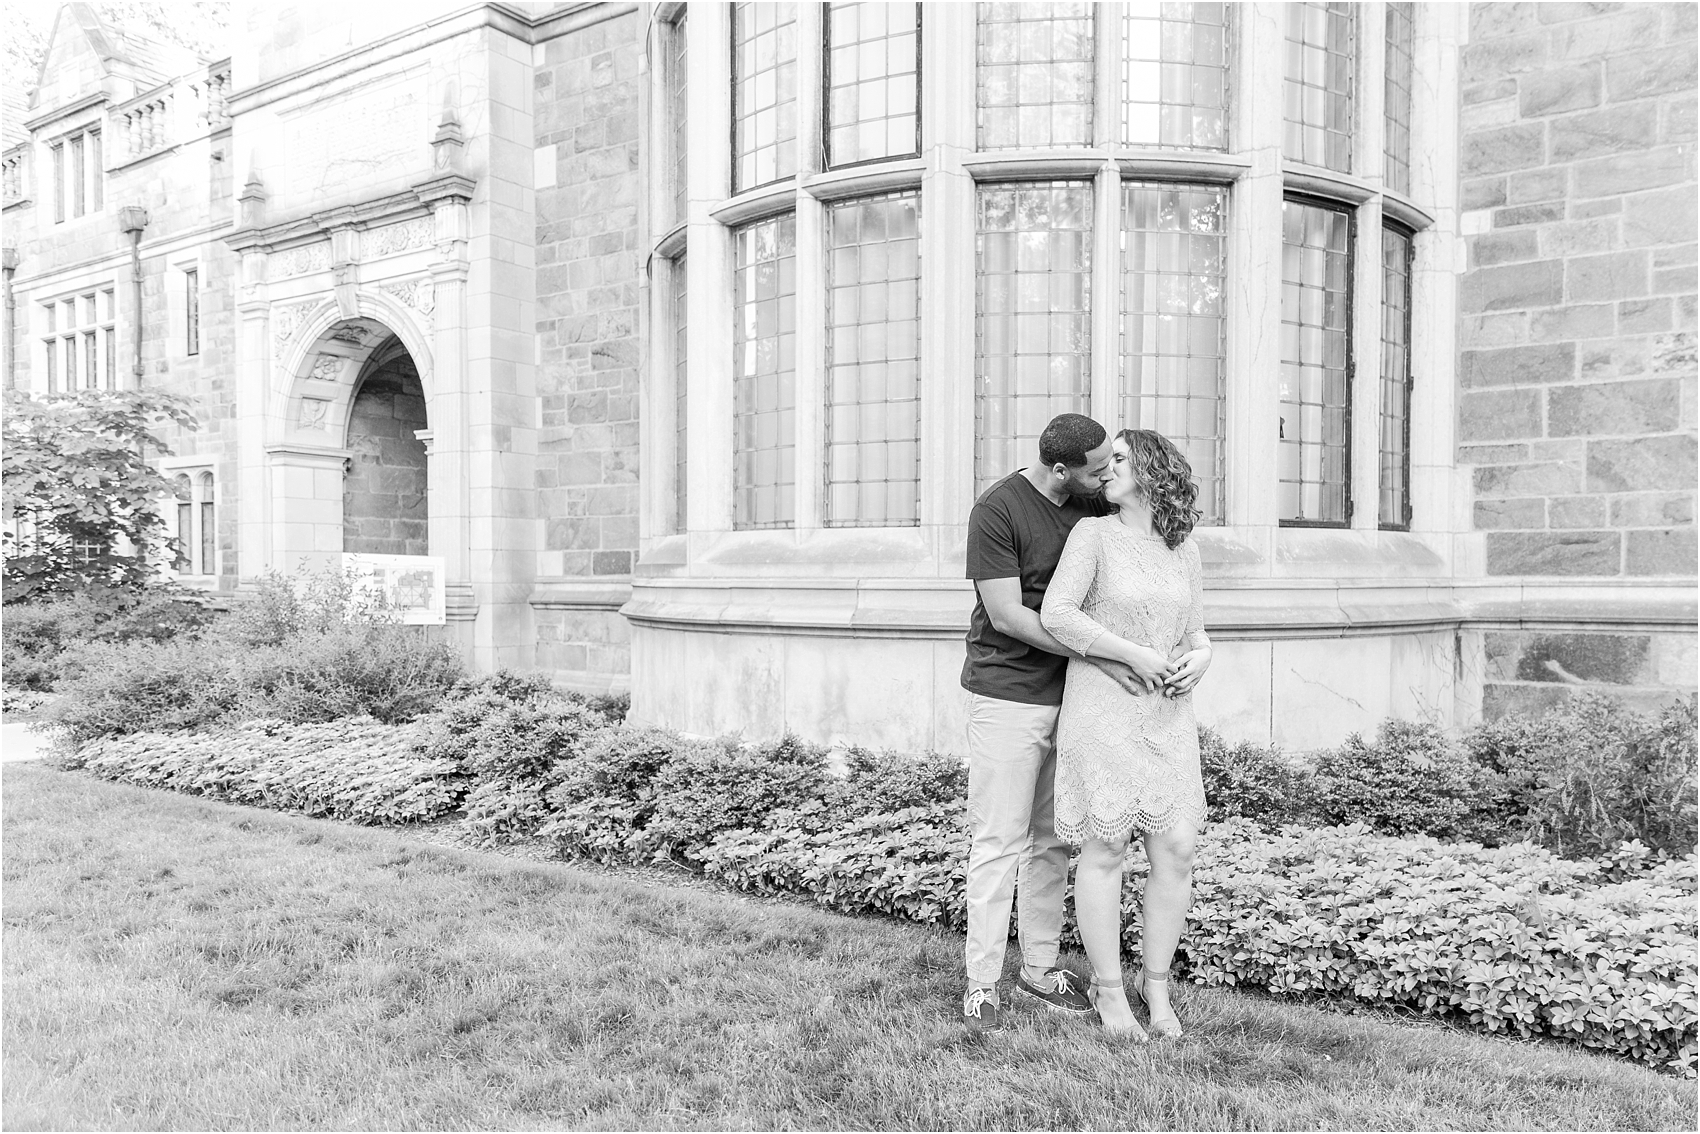 romantic-fun-university-of-michigan-engagement-photos-in-ann-arbor-mi-by-courtney-carolyn-photography_0029.jpg